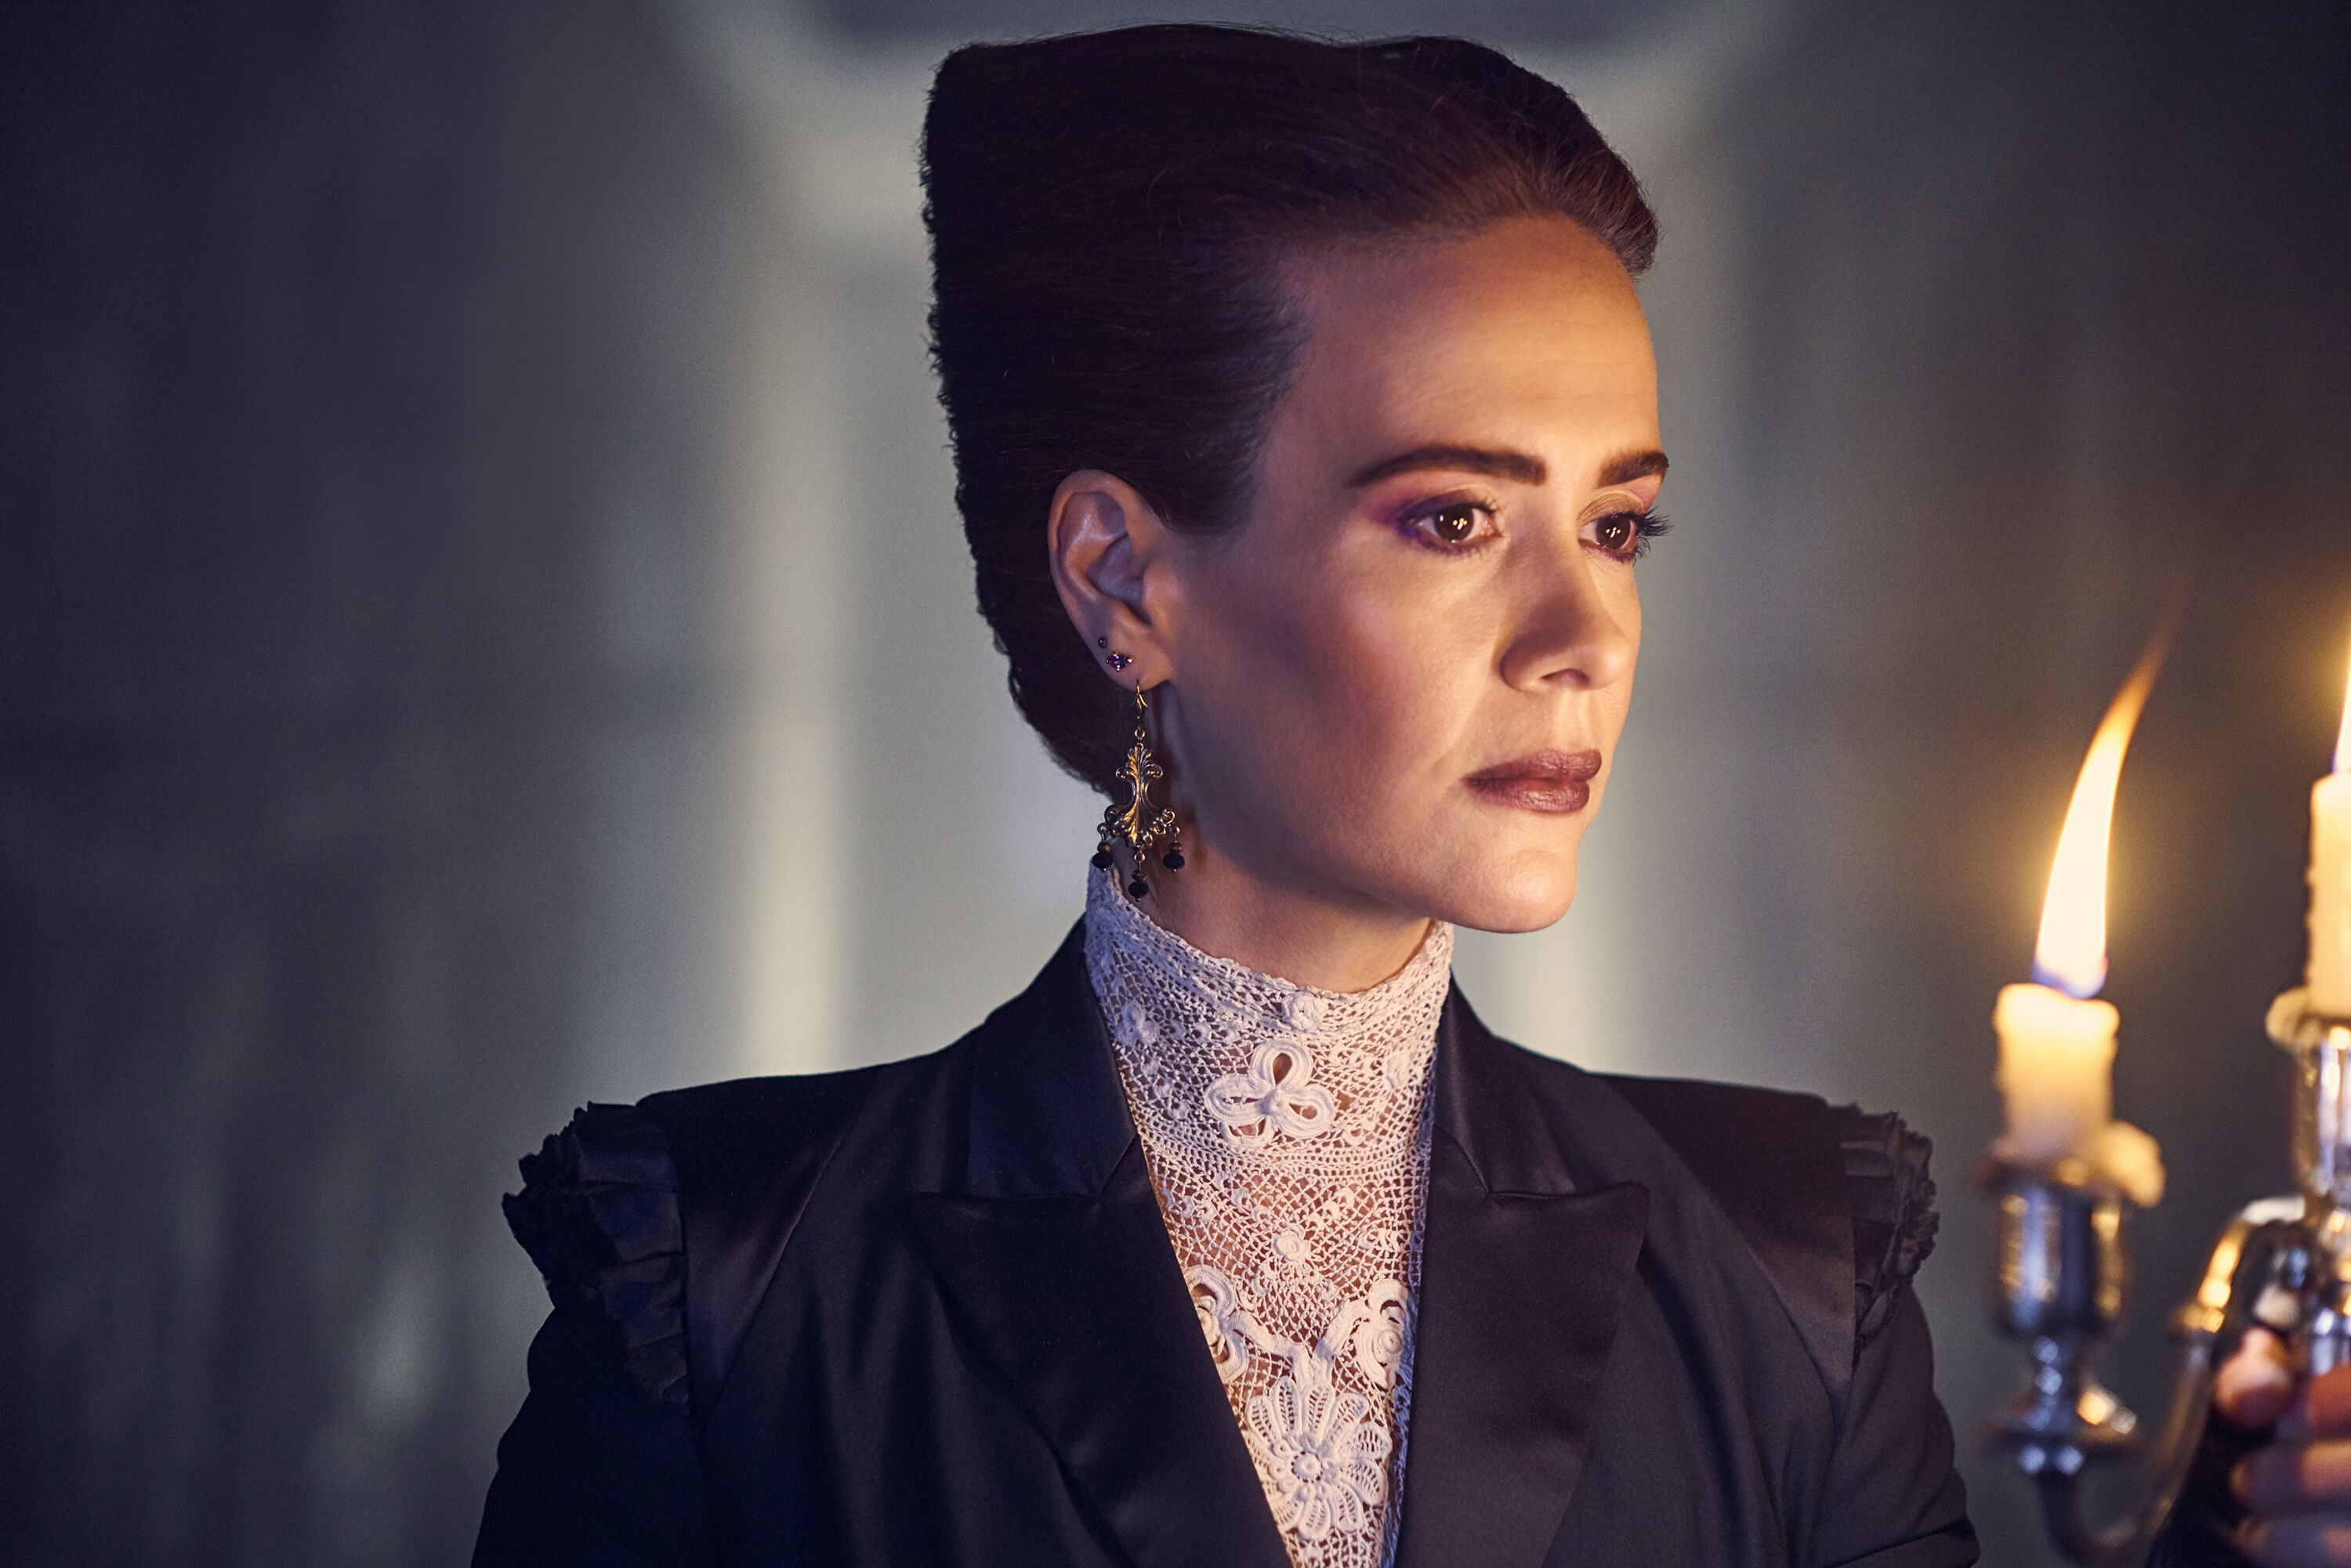 American Horror Story: Apocalypse is coming to Netflix in September 2019